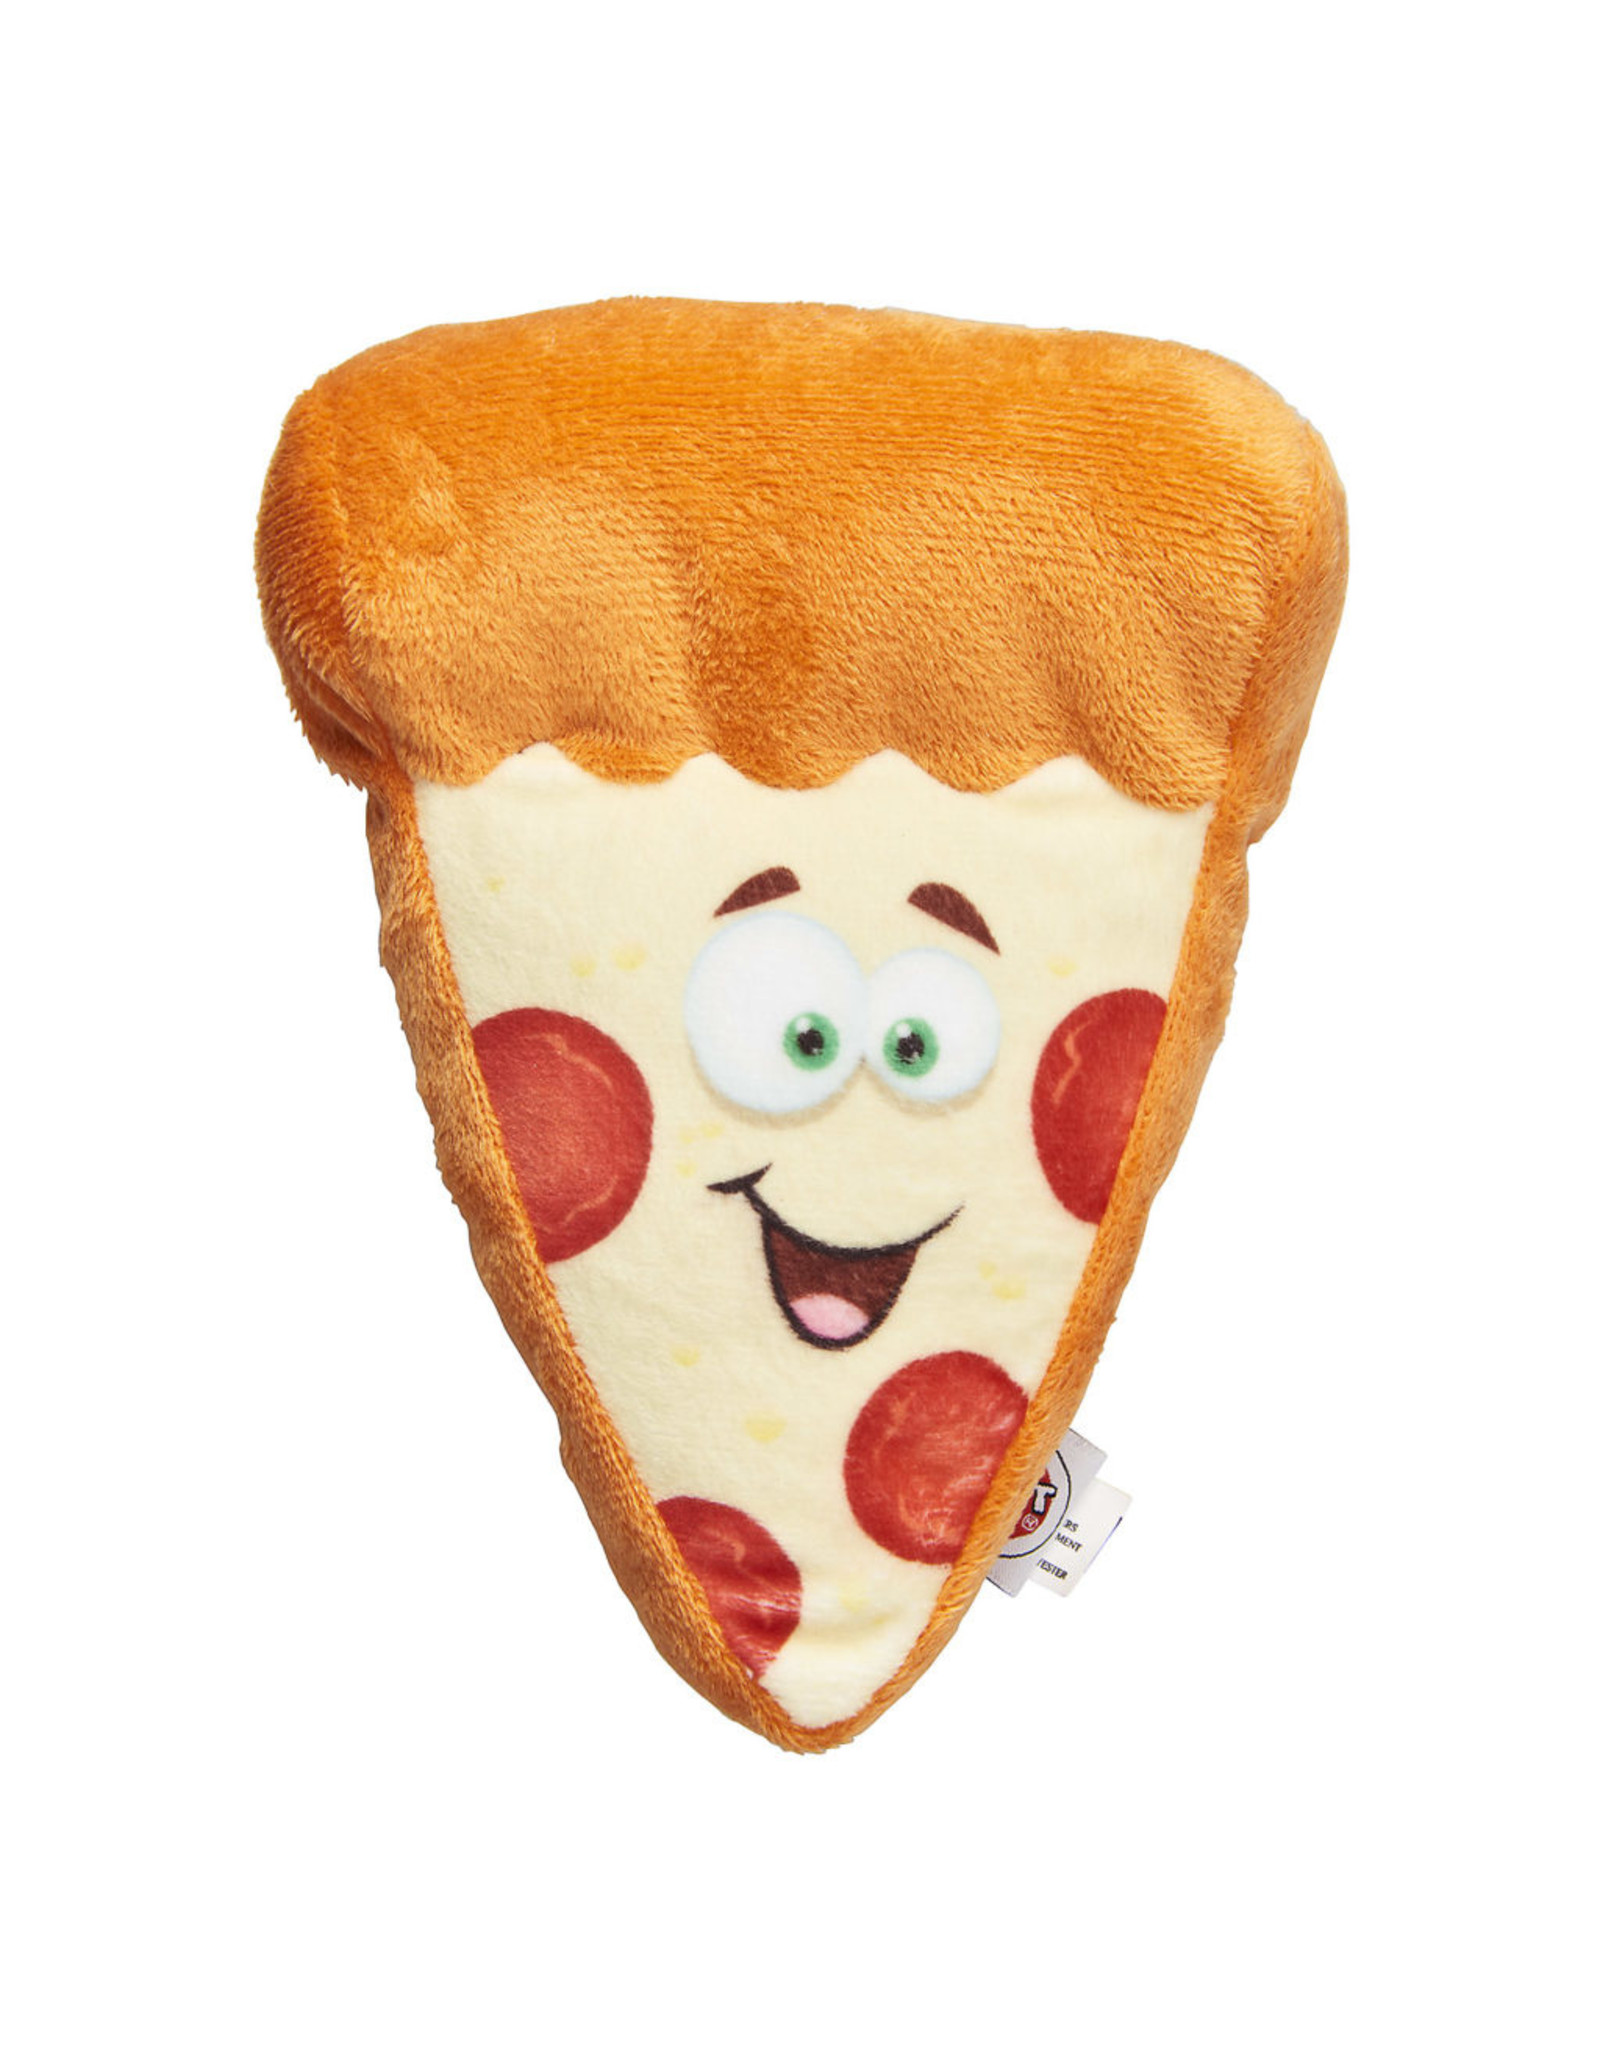 """Spot (Ethical) Fun Food - Pizza 6.5"""""""